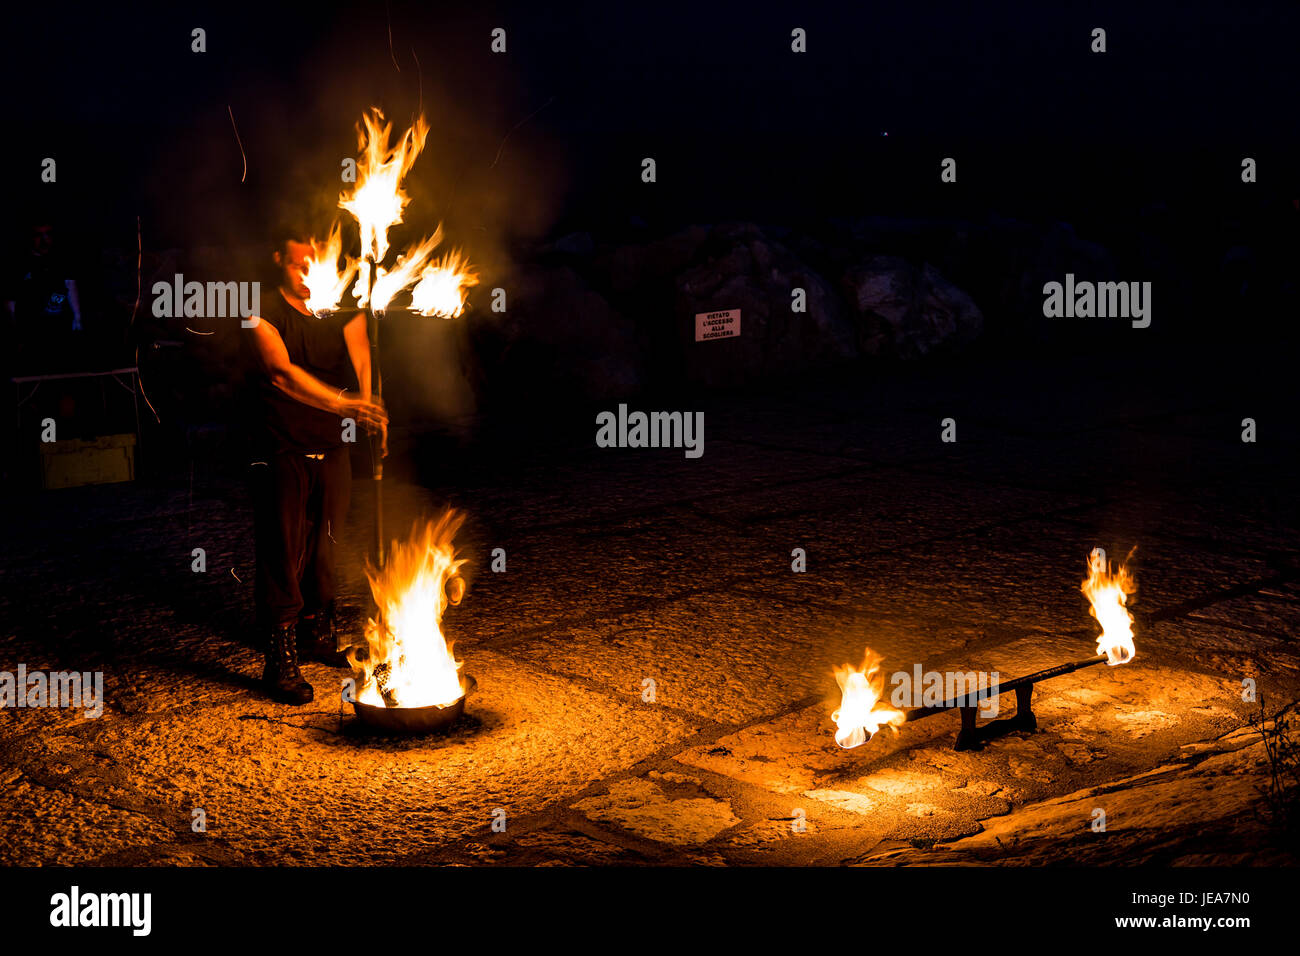 Street artist with a burning stick and eyes closed preparing to present his fire show - Stock Image